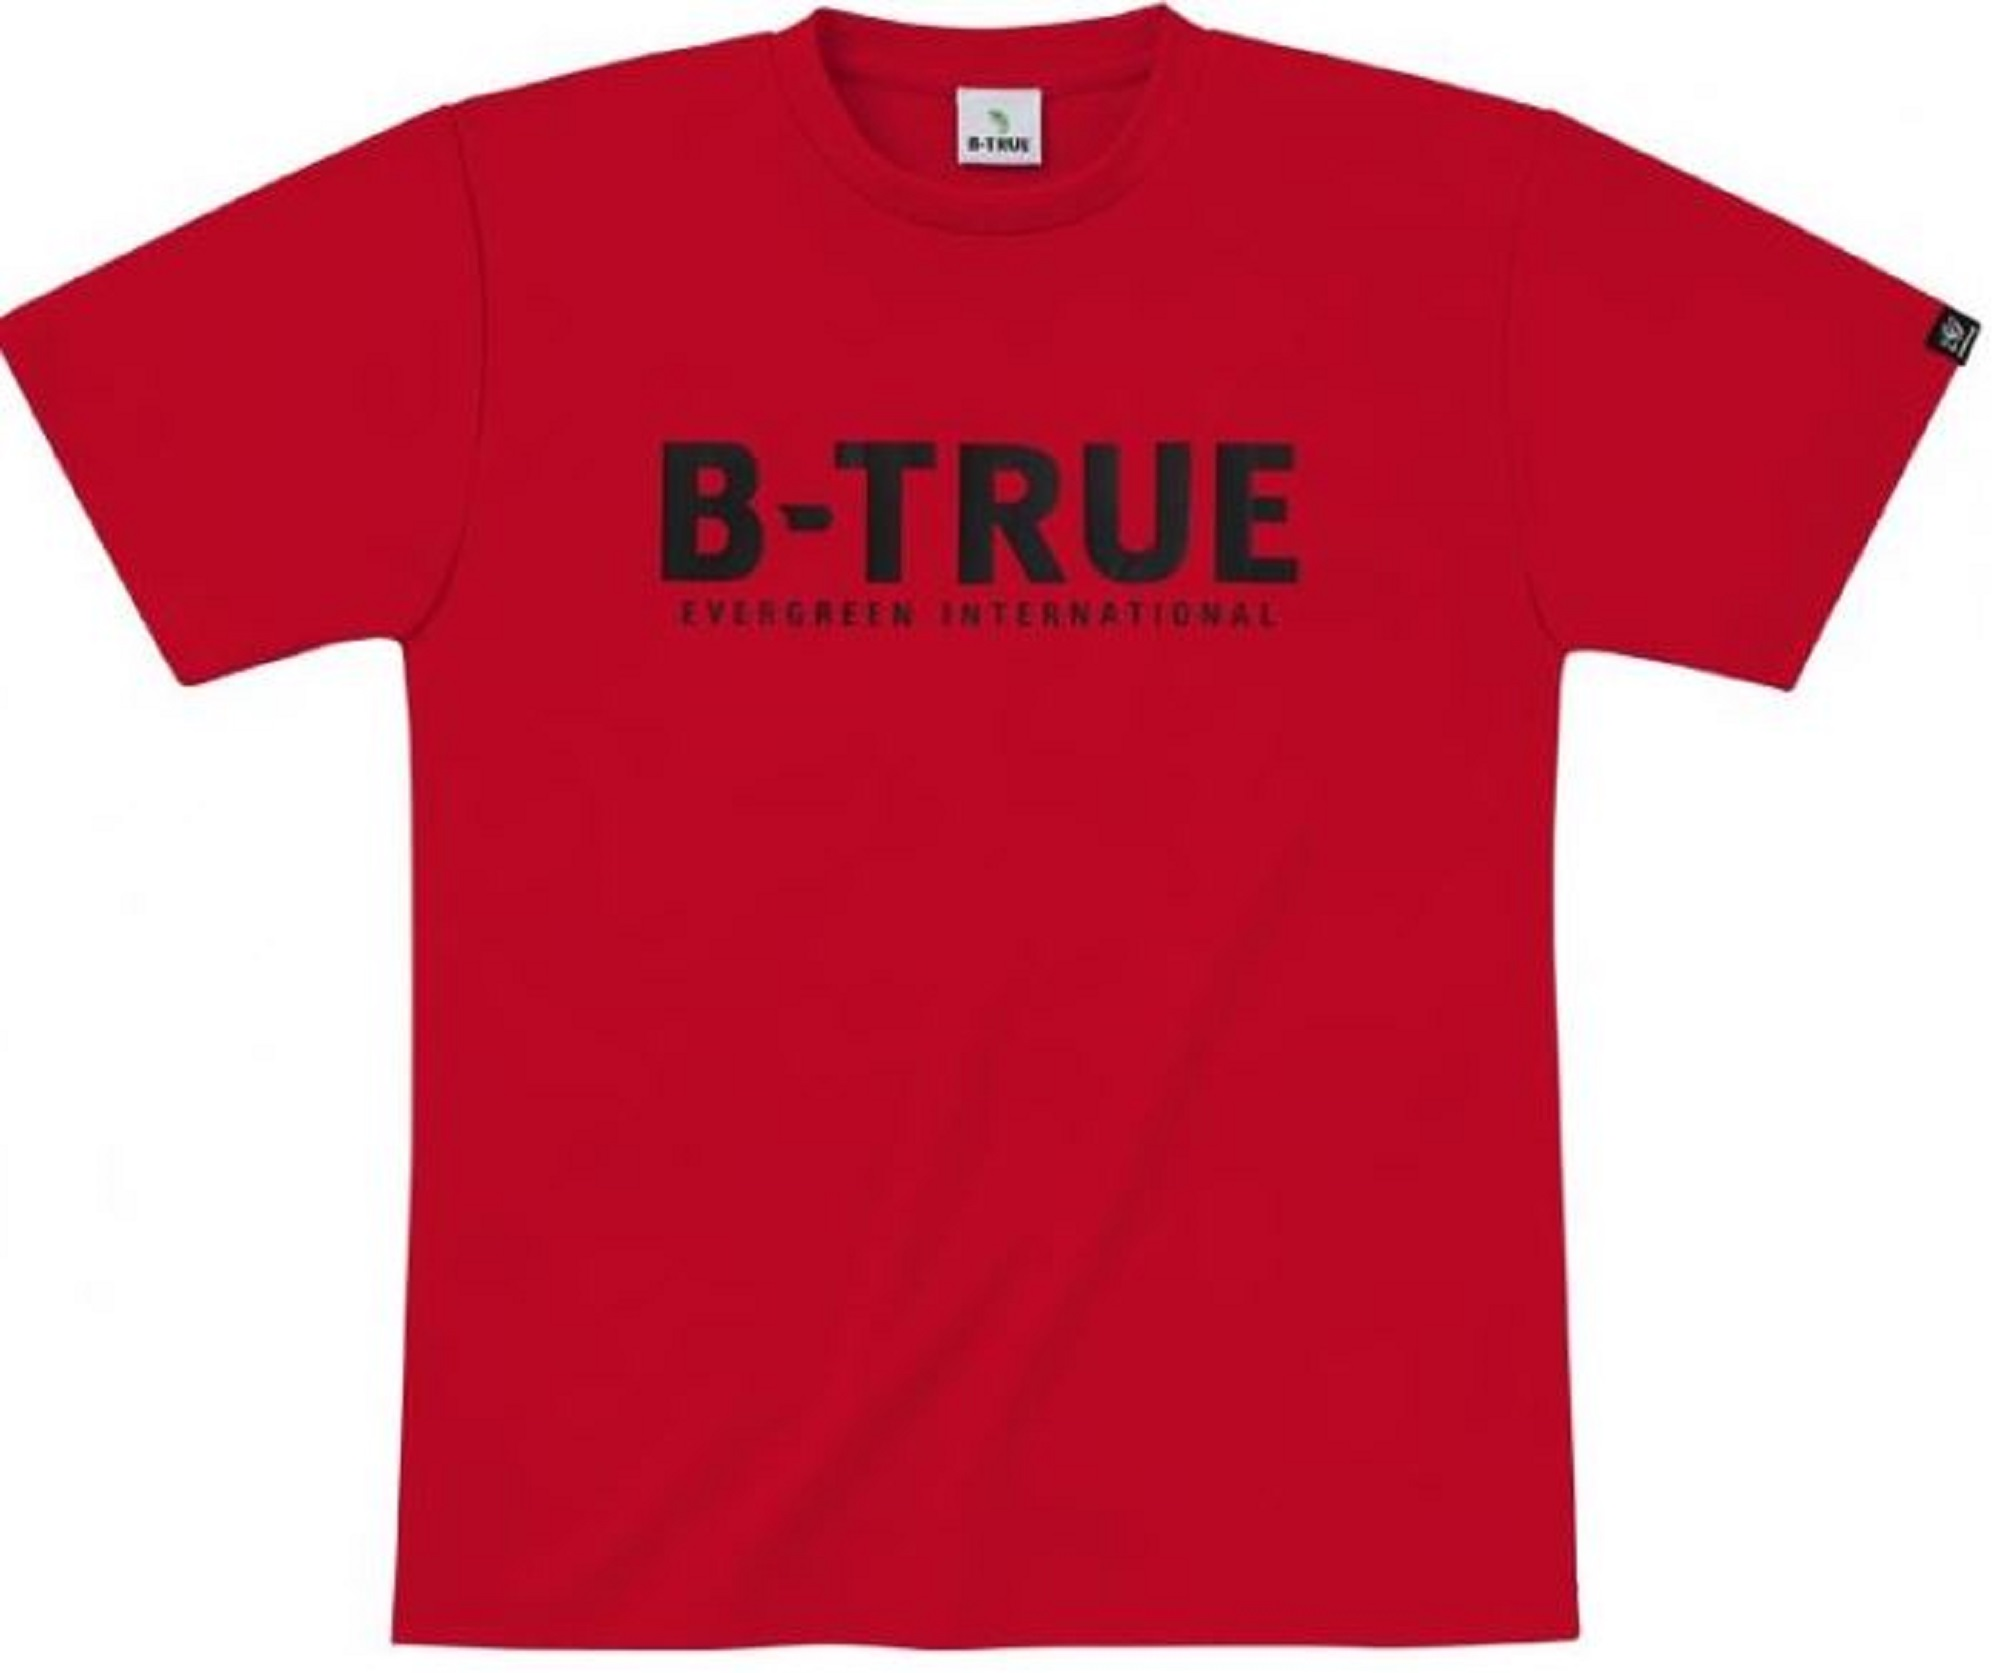 Evergreen T-Shirt Dry Fit Short Sleeve B-True A Type Size L Red (4753)